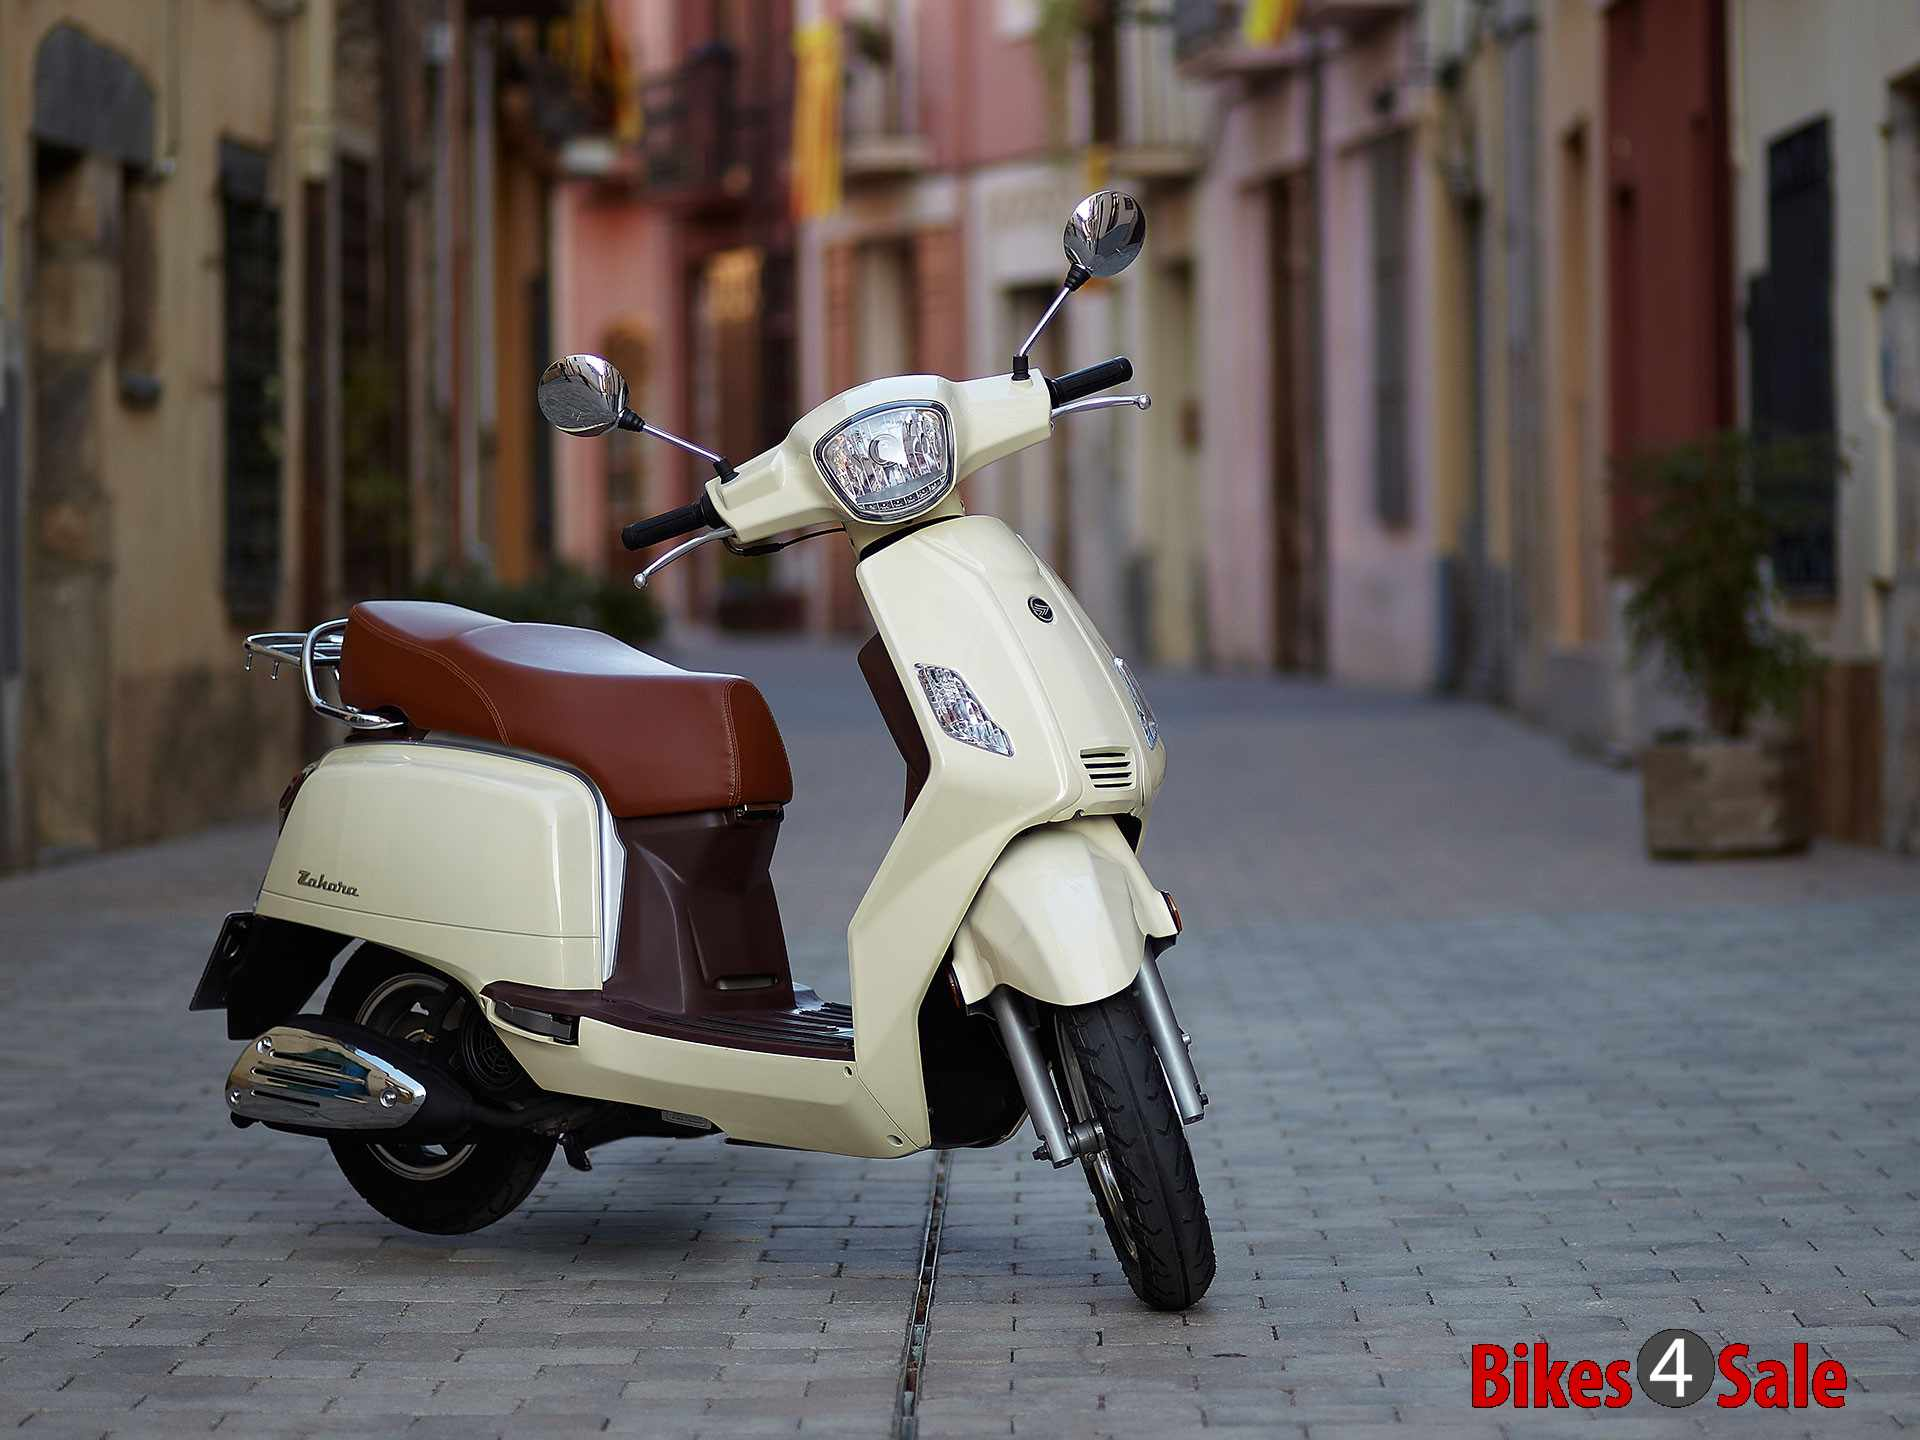 keeway zahara  scooter picture gallery cream color bikessale